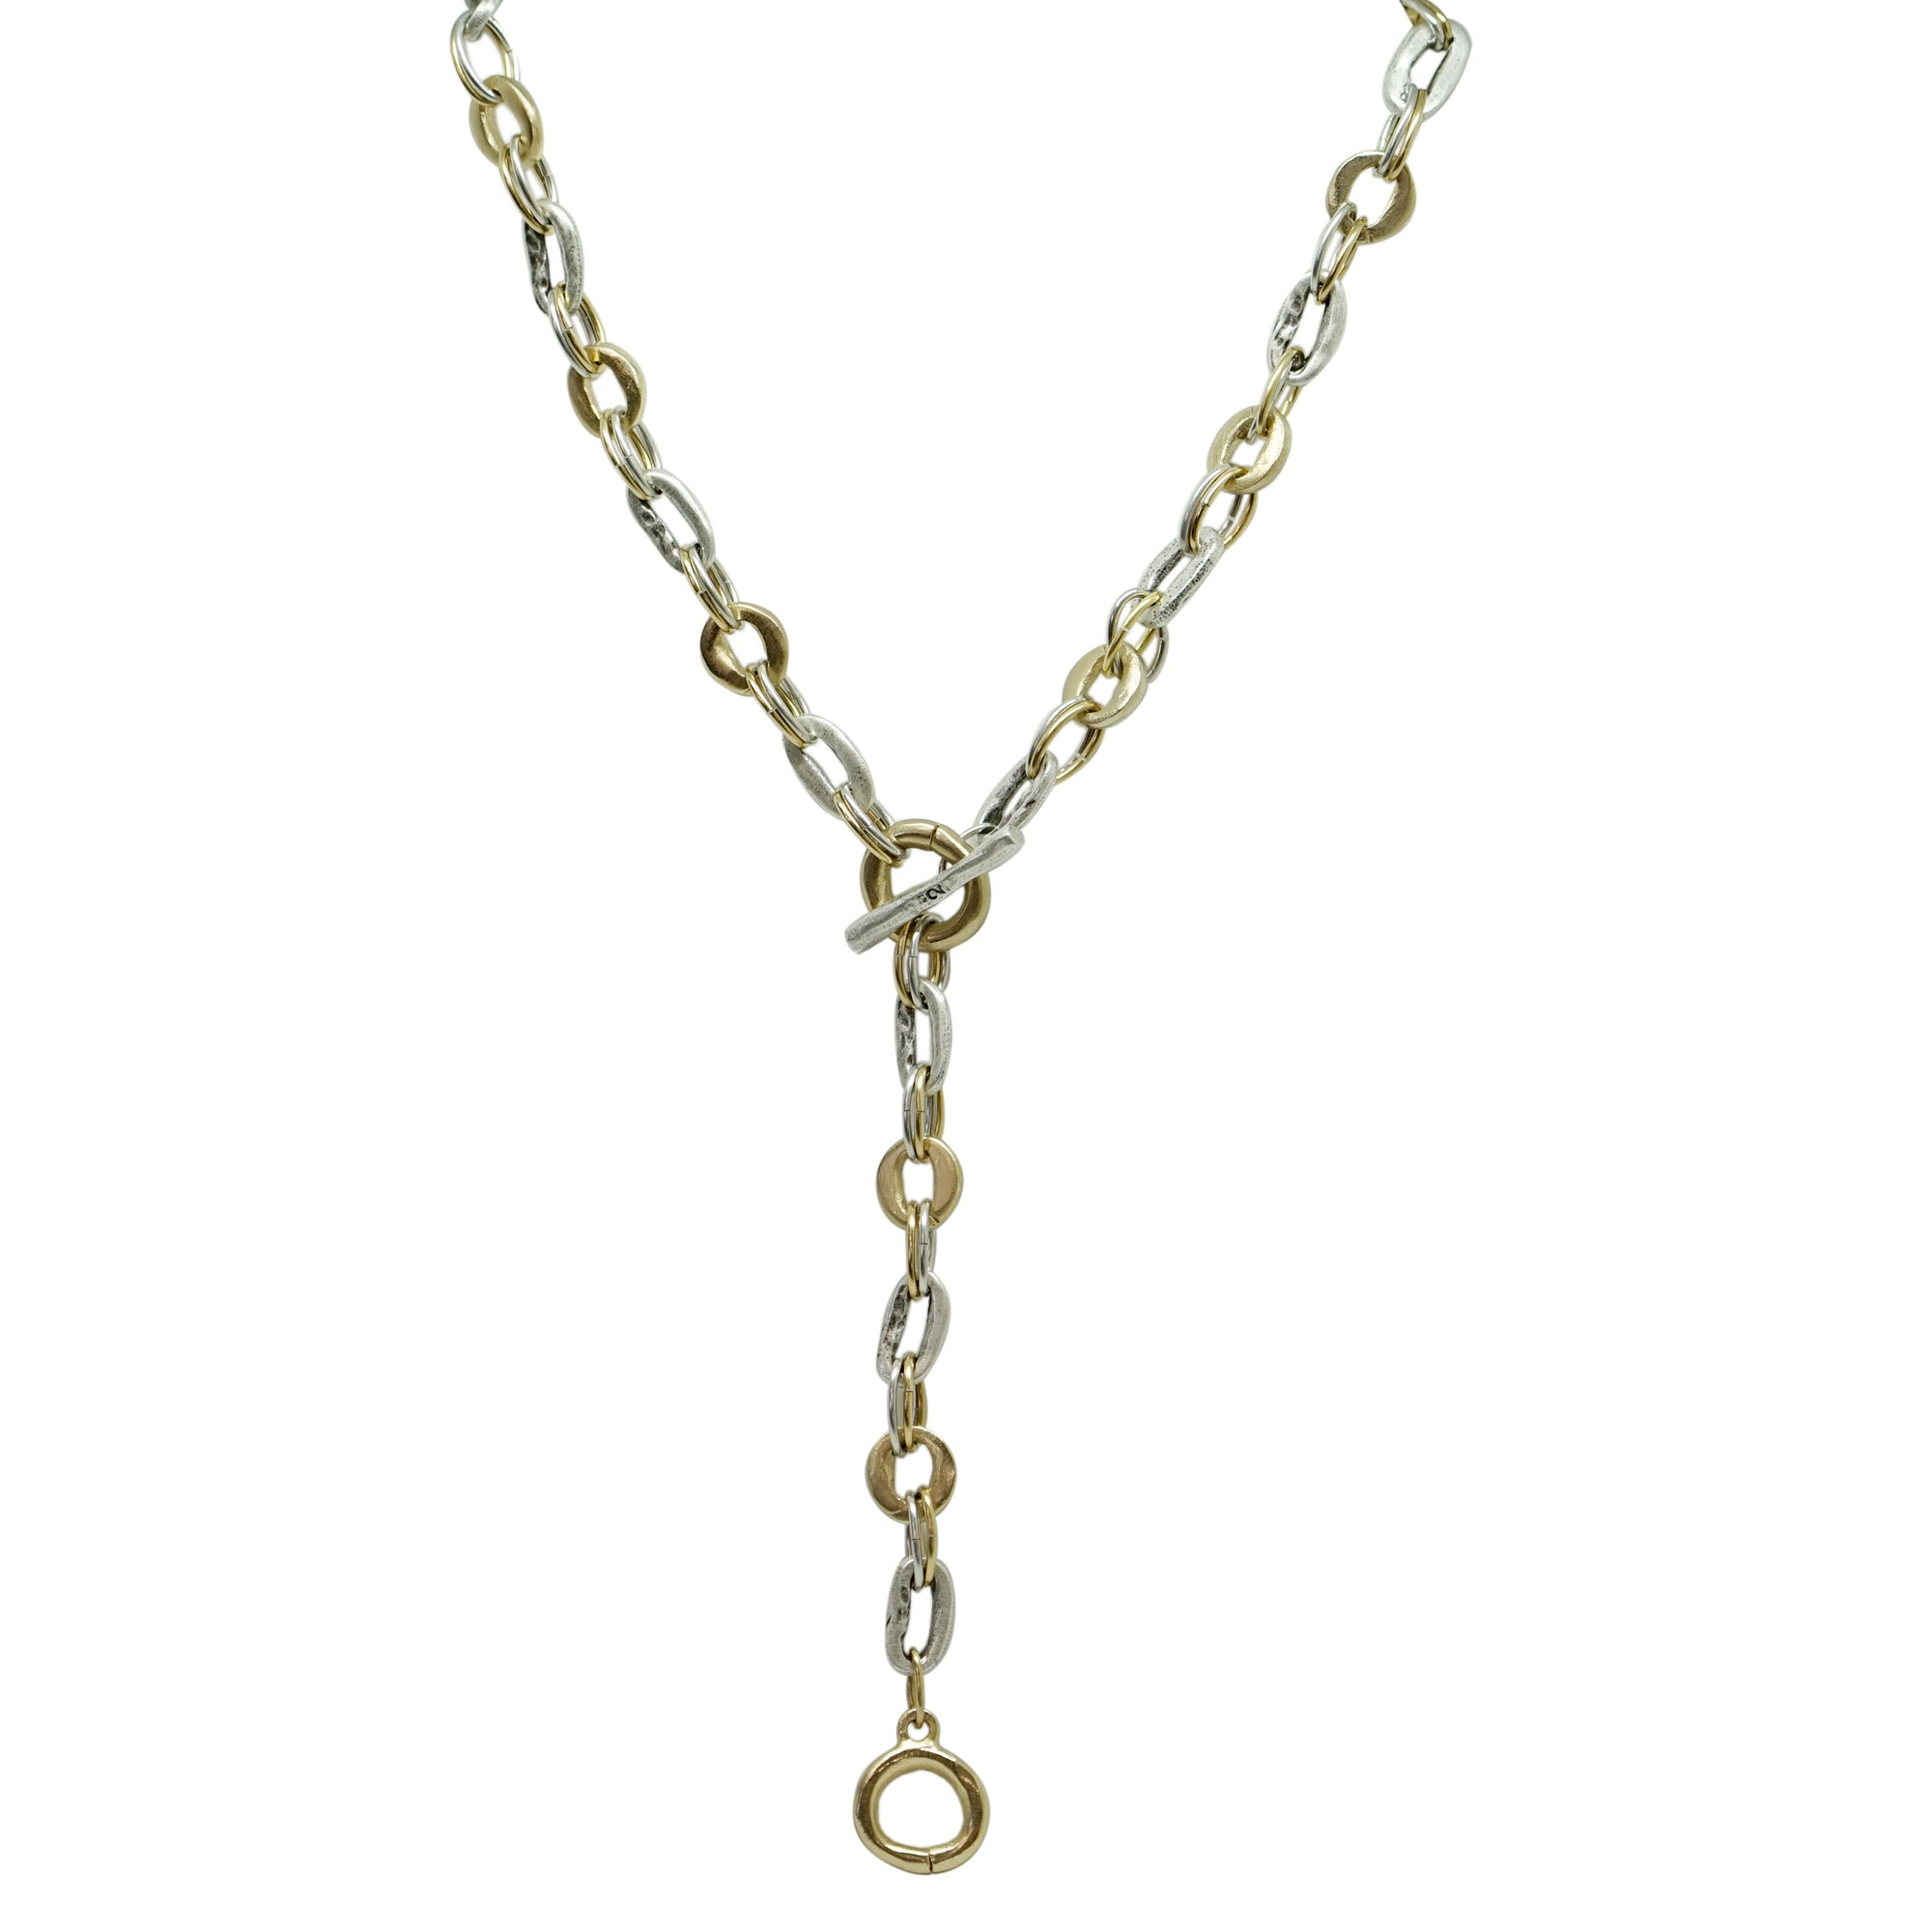 TWO TONE MINI LOOP LINK Y NECKLACE / 24""